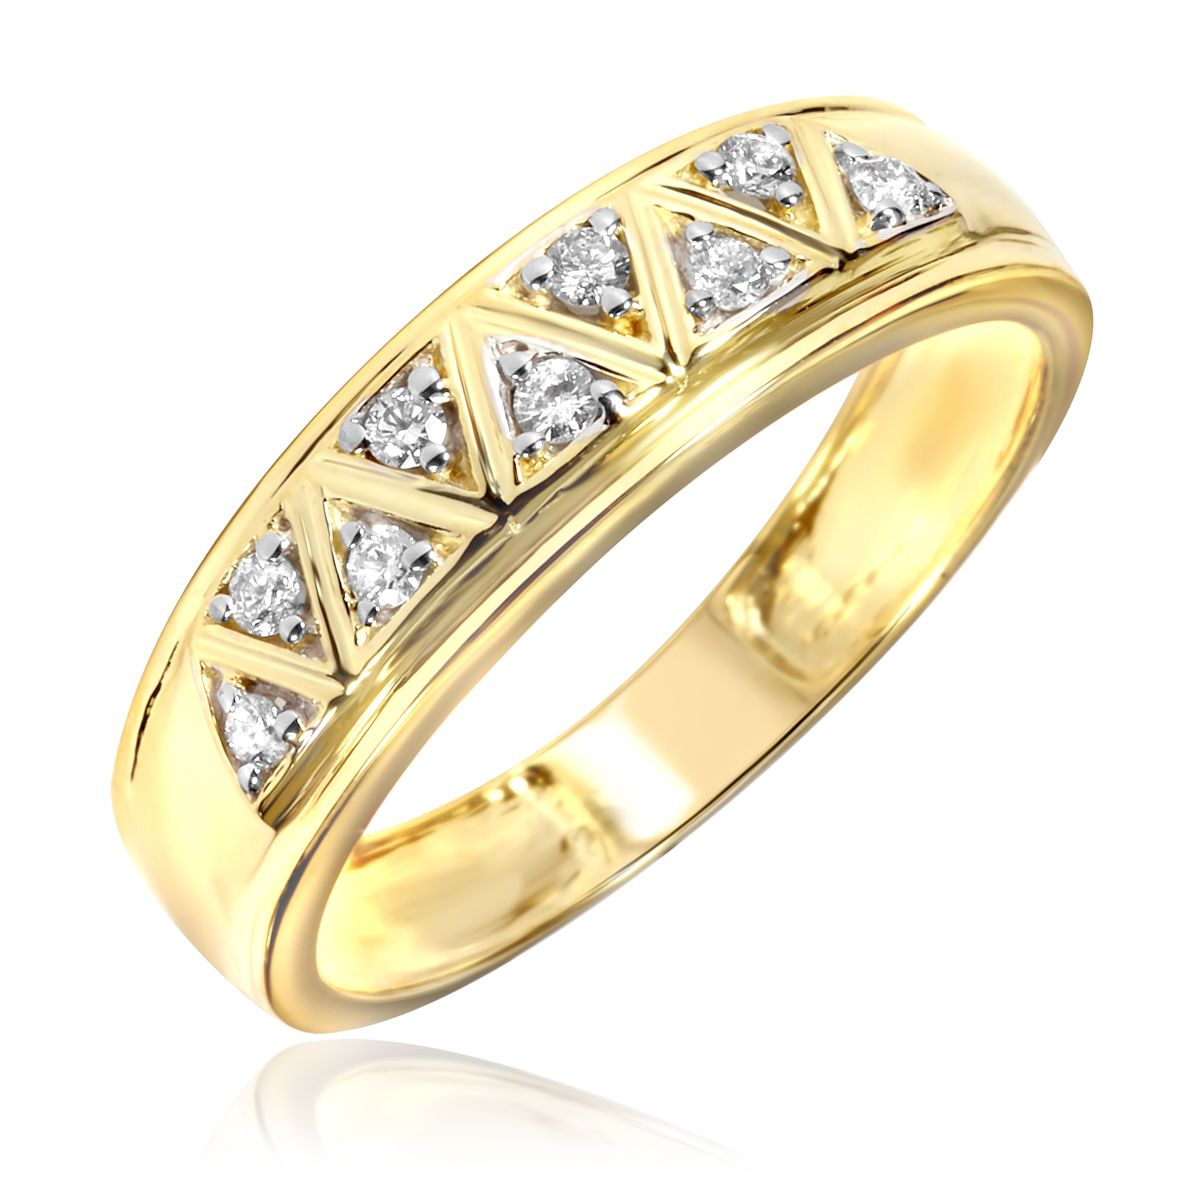 12 carat diamond trio wedding ring set 10k yellow gold - Gold Wedding Rings For Men